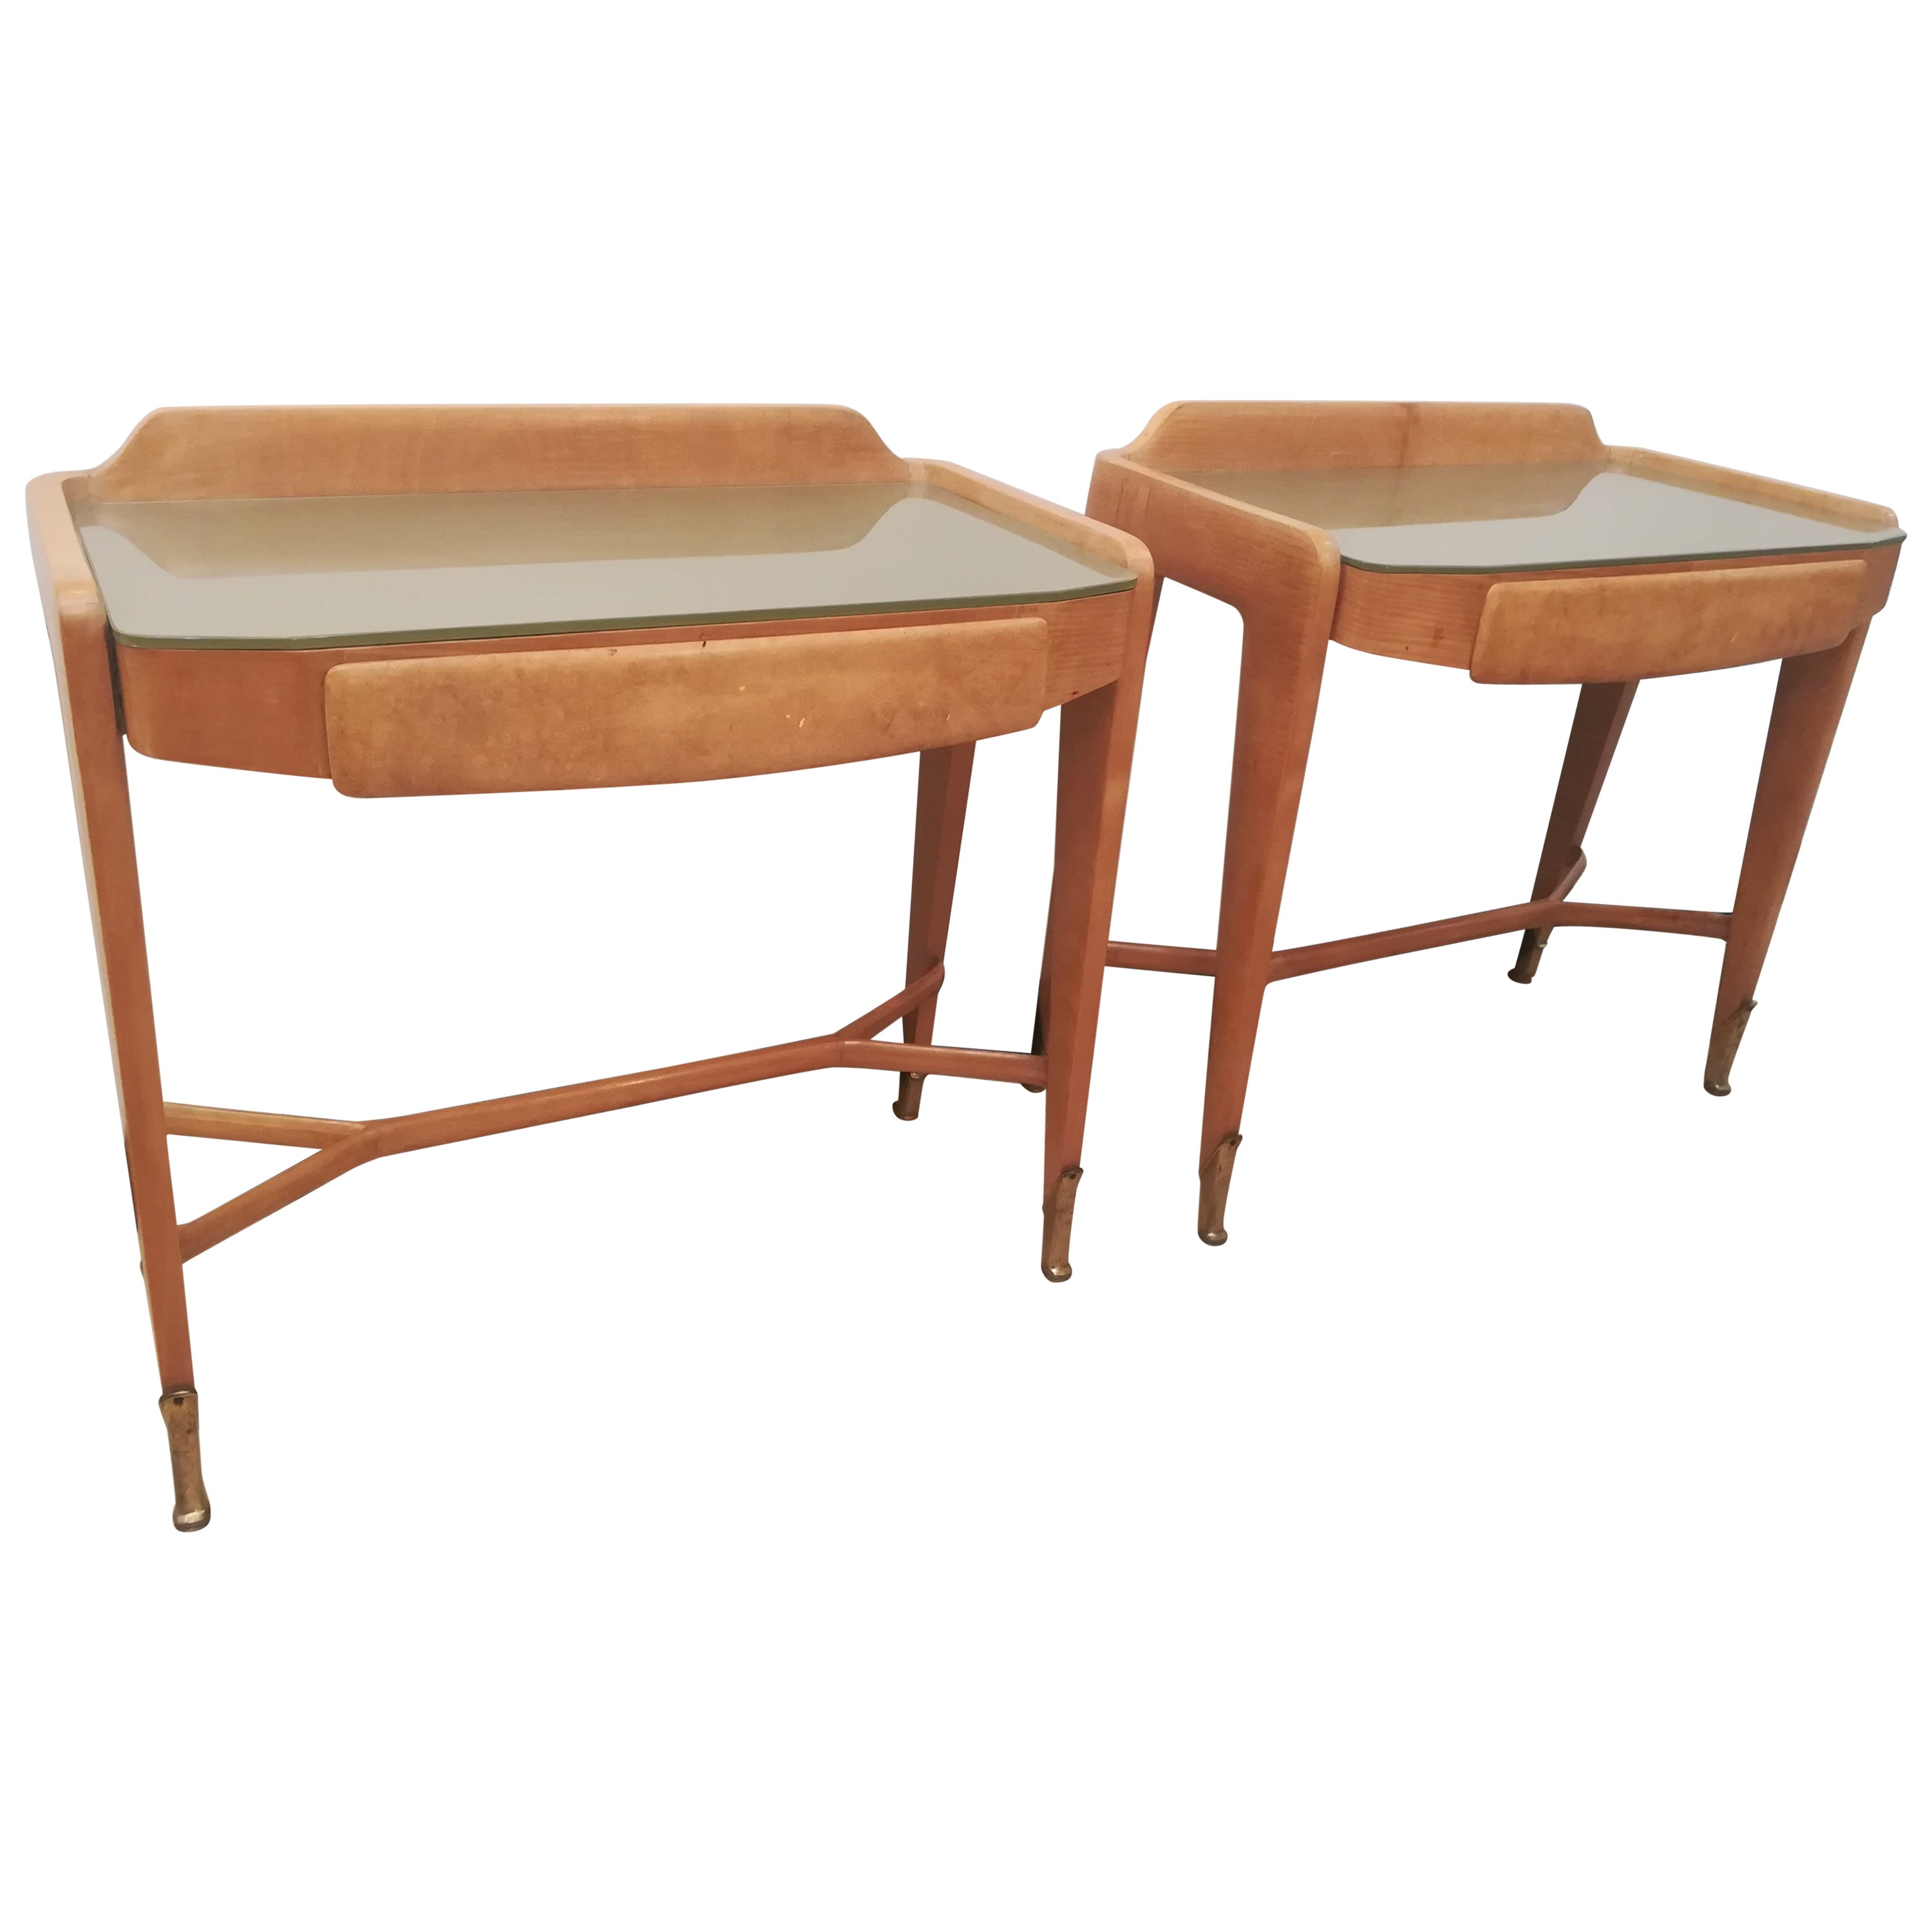 Pair of Bedsides or End Tables in Wood, circa 1950